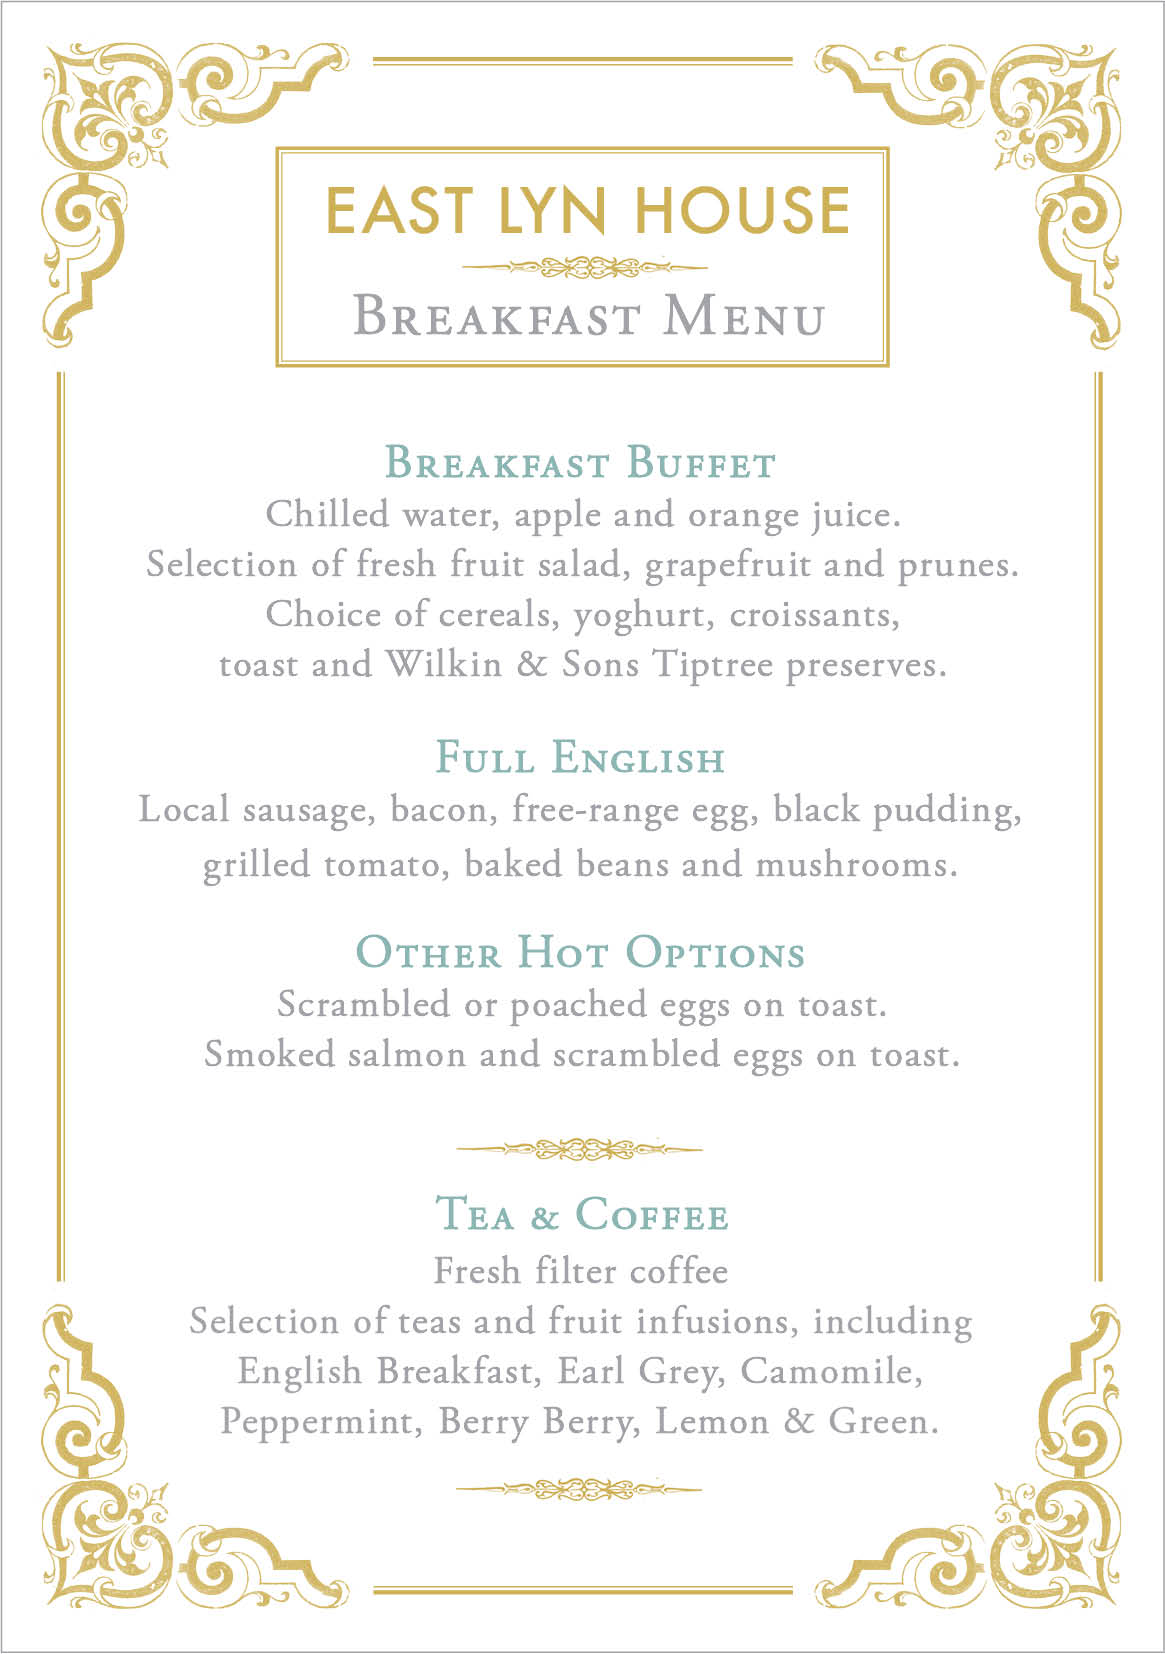 East Lyn House B&B breakfast menu